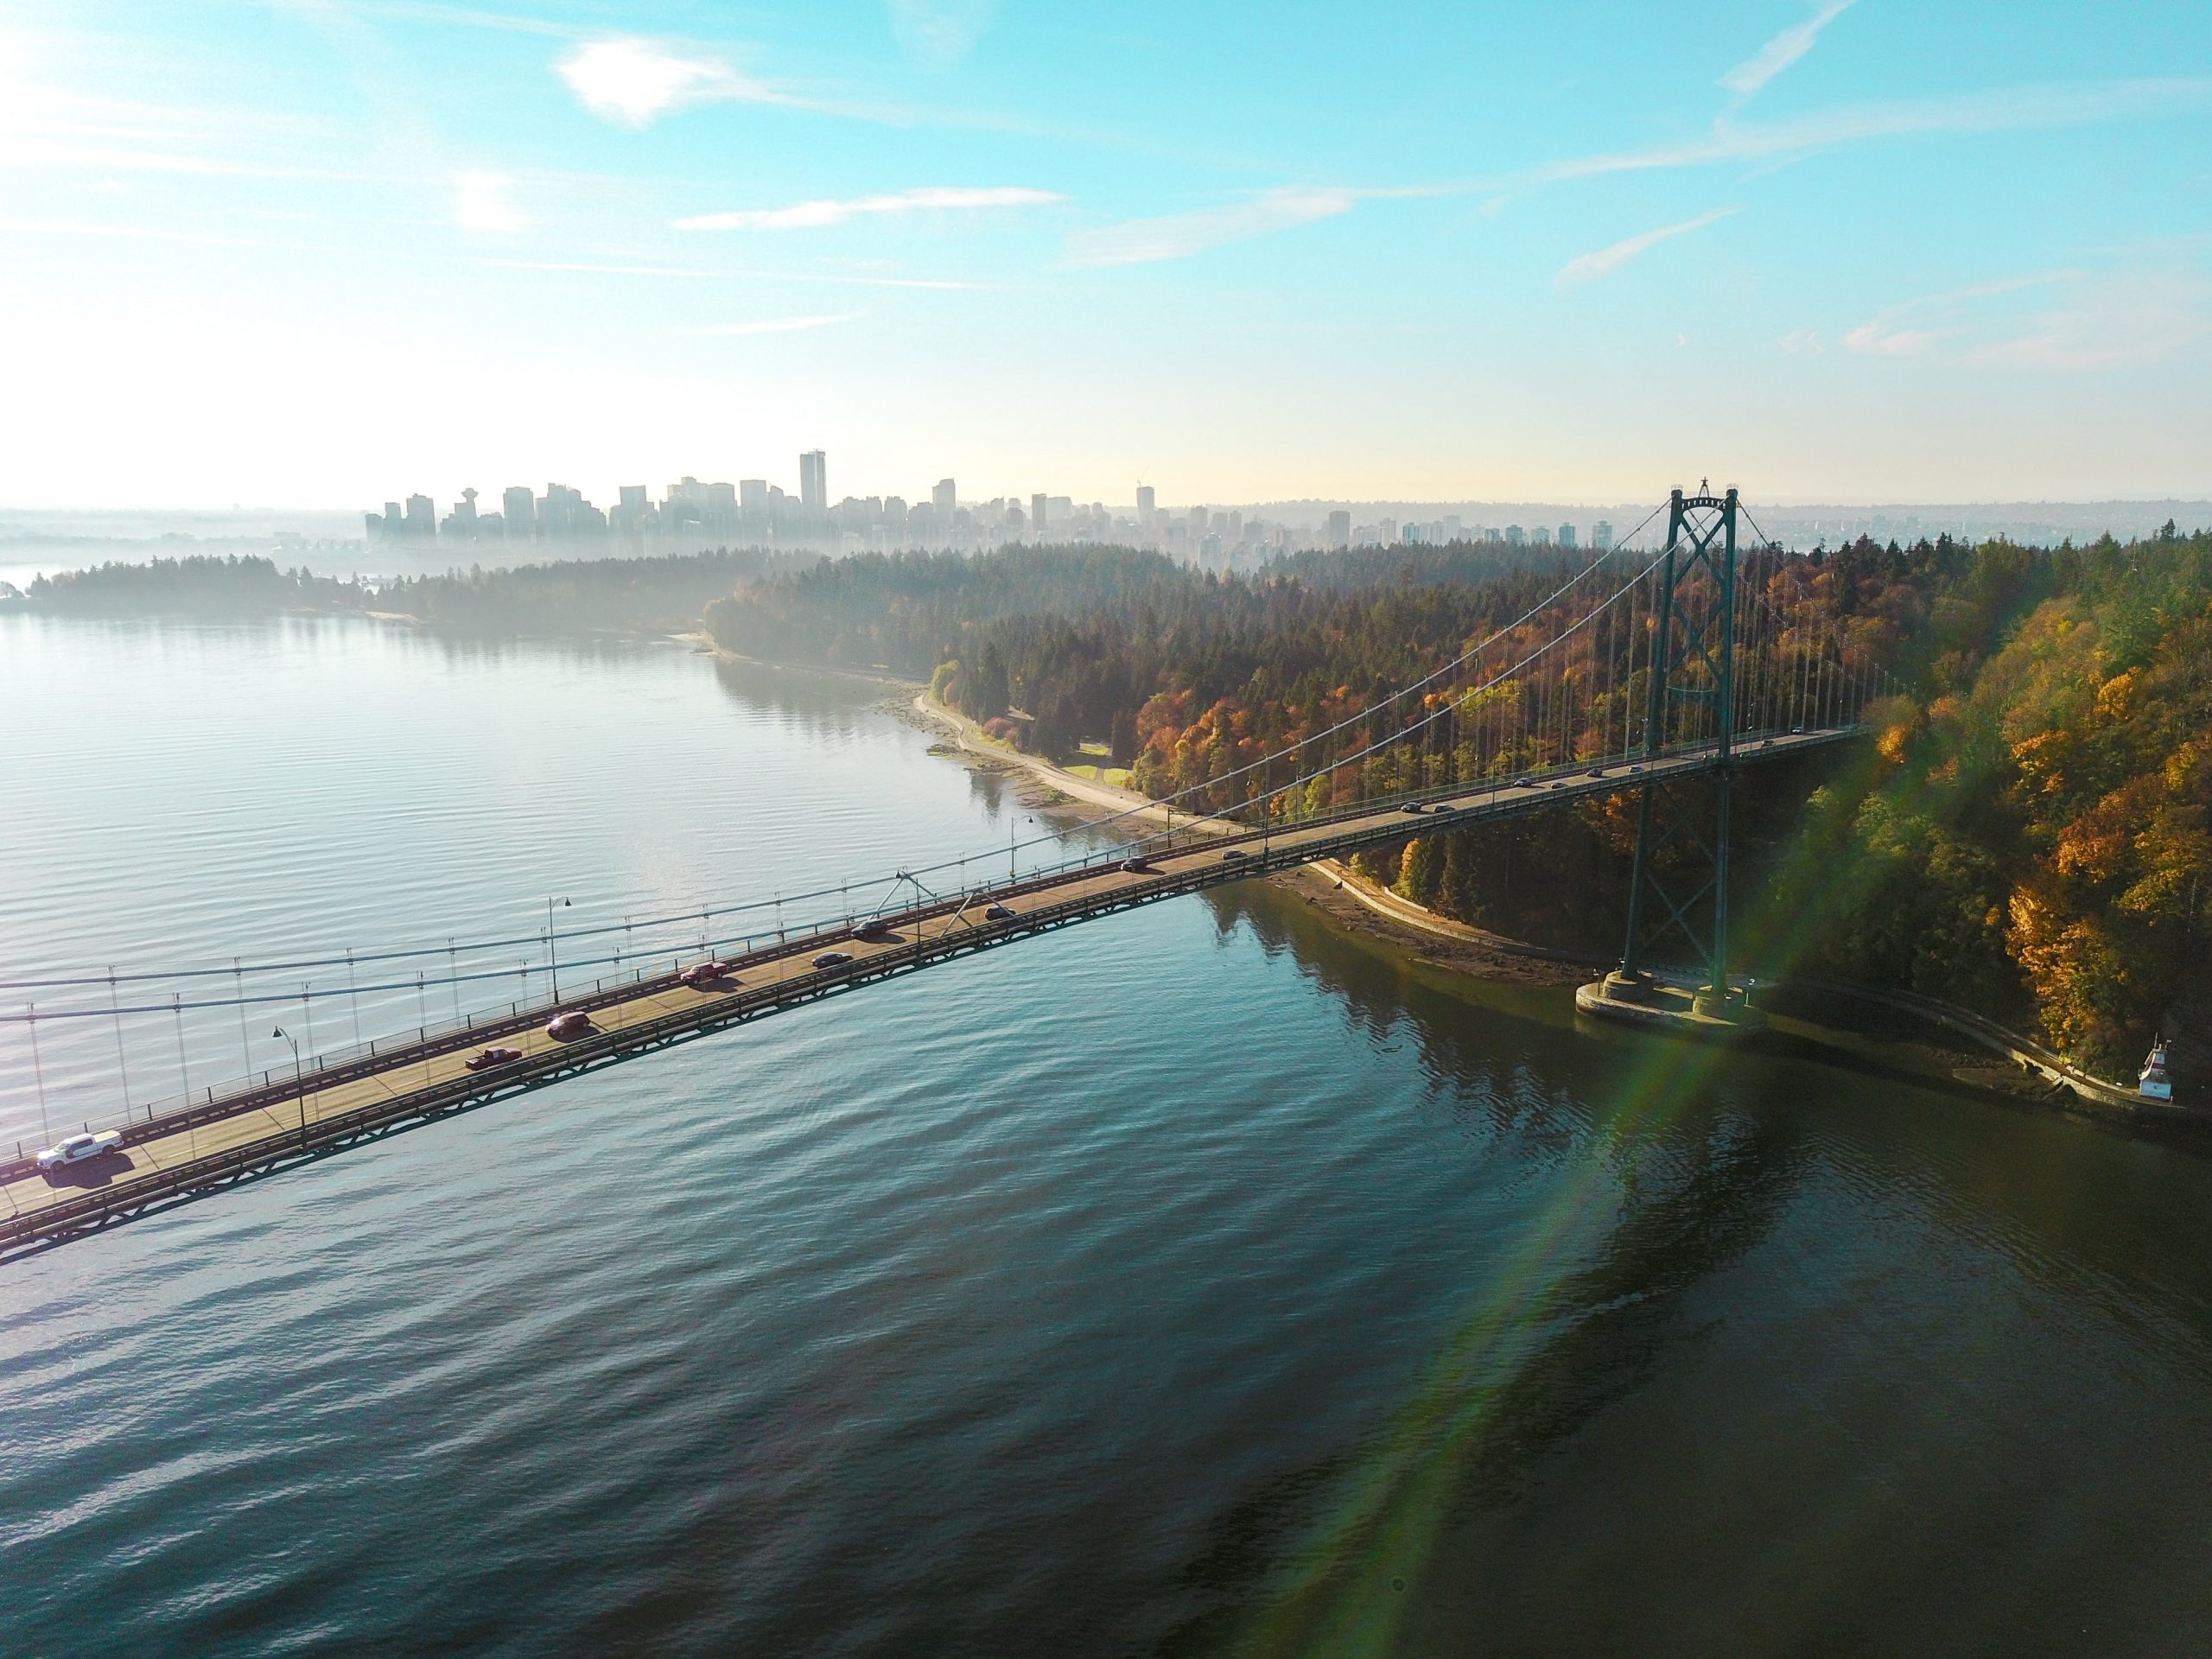 An aerial view of a bridge, water, and a park